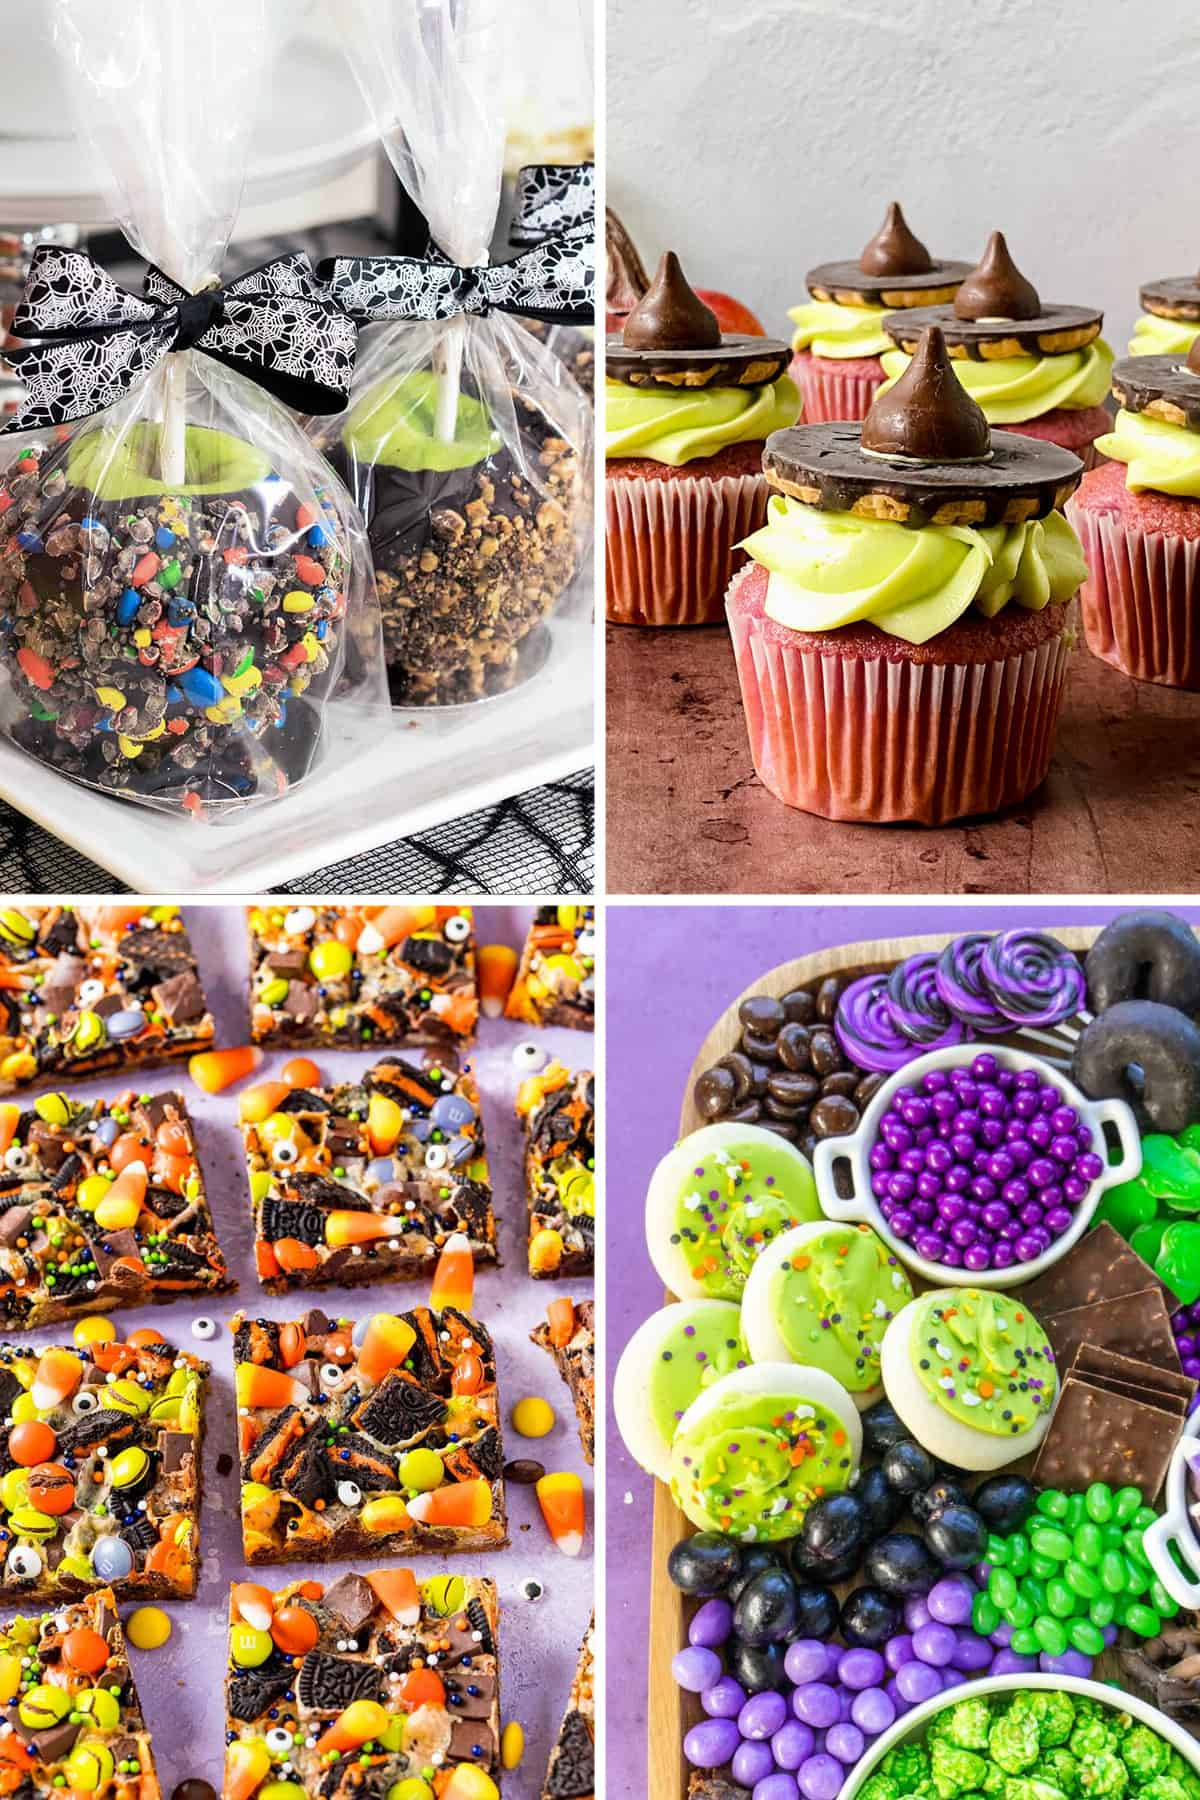 Collage of halloween party desserts including chocolate dipped apples, witch cupcakes, candy bars, and a dessert snack board.